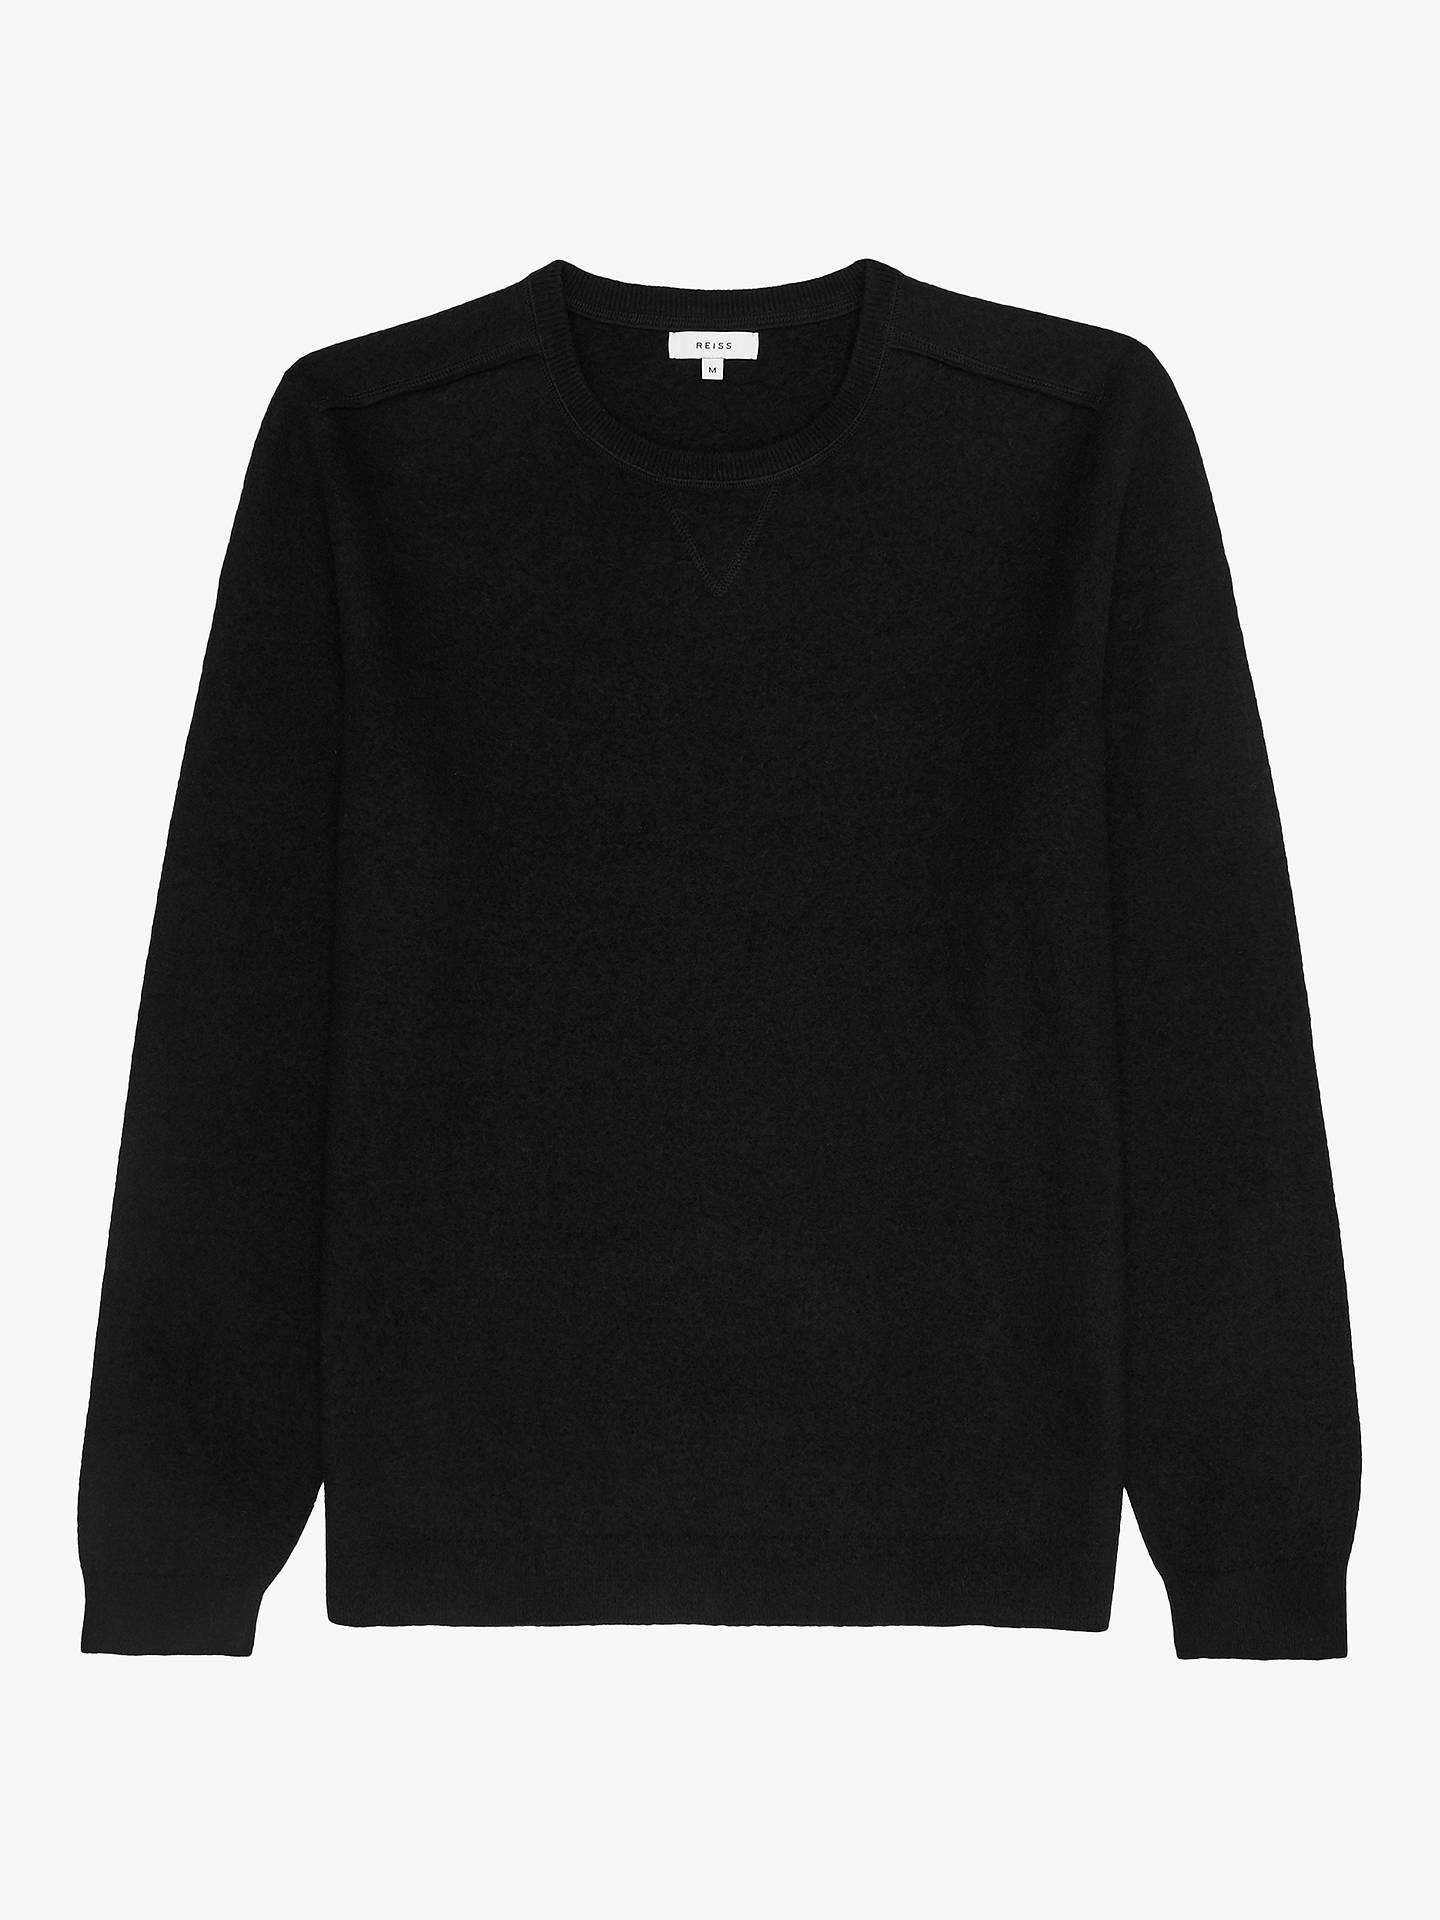 Buy Reiss Cambeck Felted Sweatshirt, Black, M Online at johnlewis.com